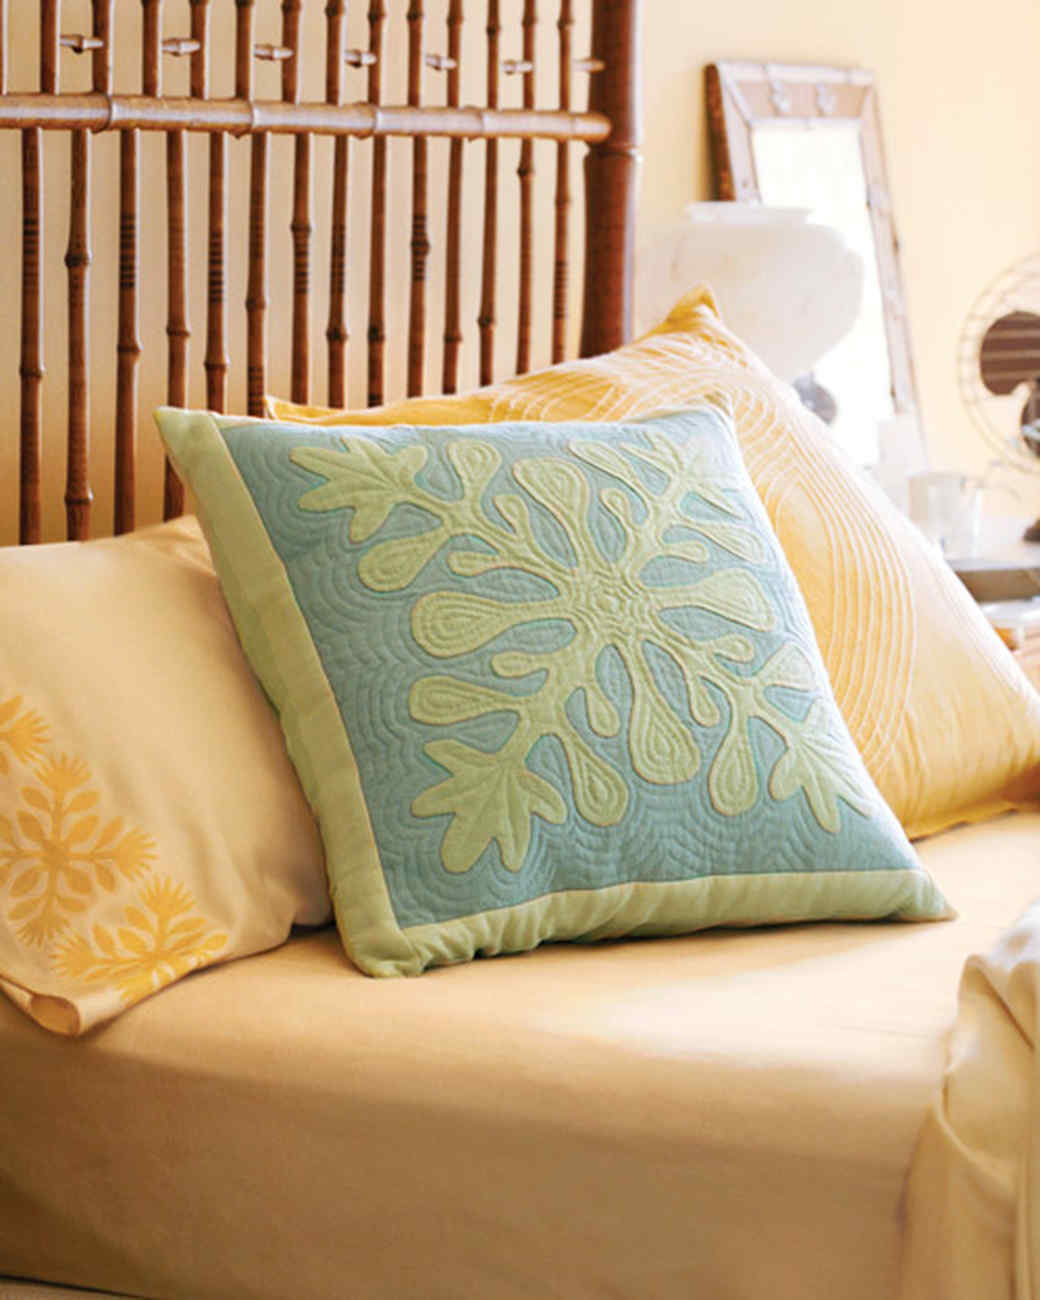 How to Make a Hawaiian Quilted Pillow Cover | Martha Stewart : hawaiian quilt pillows - Adamdwight.com